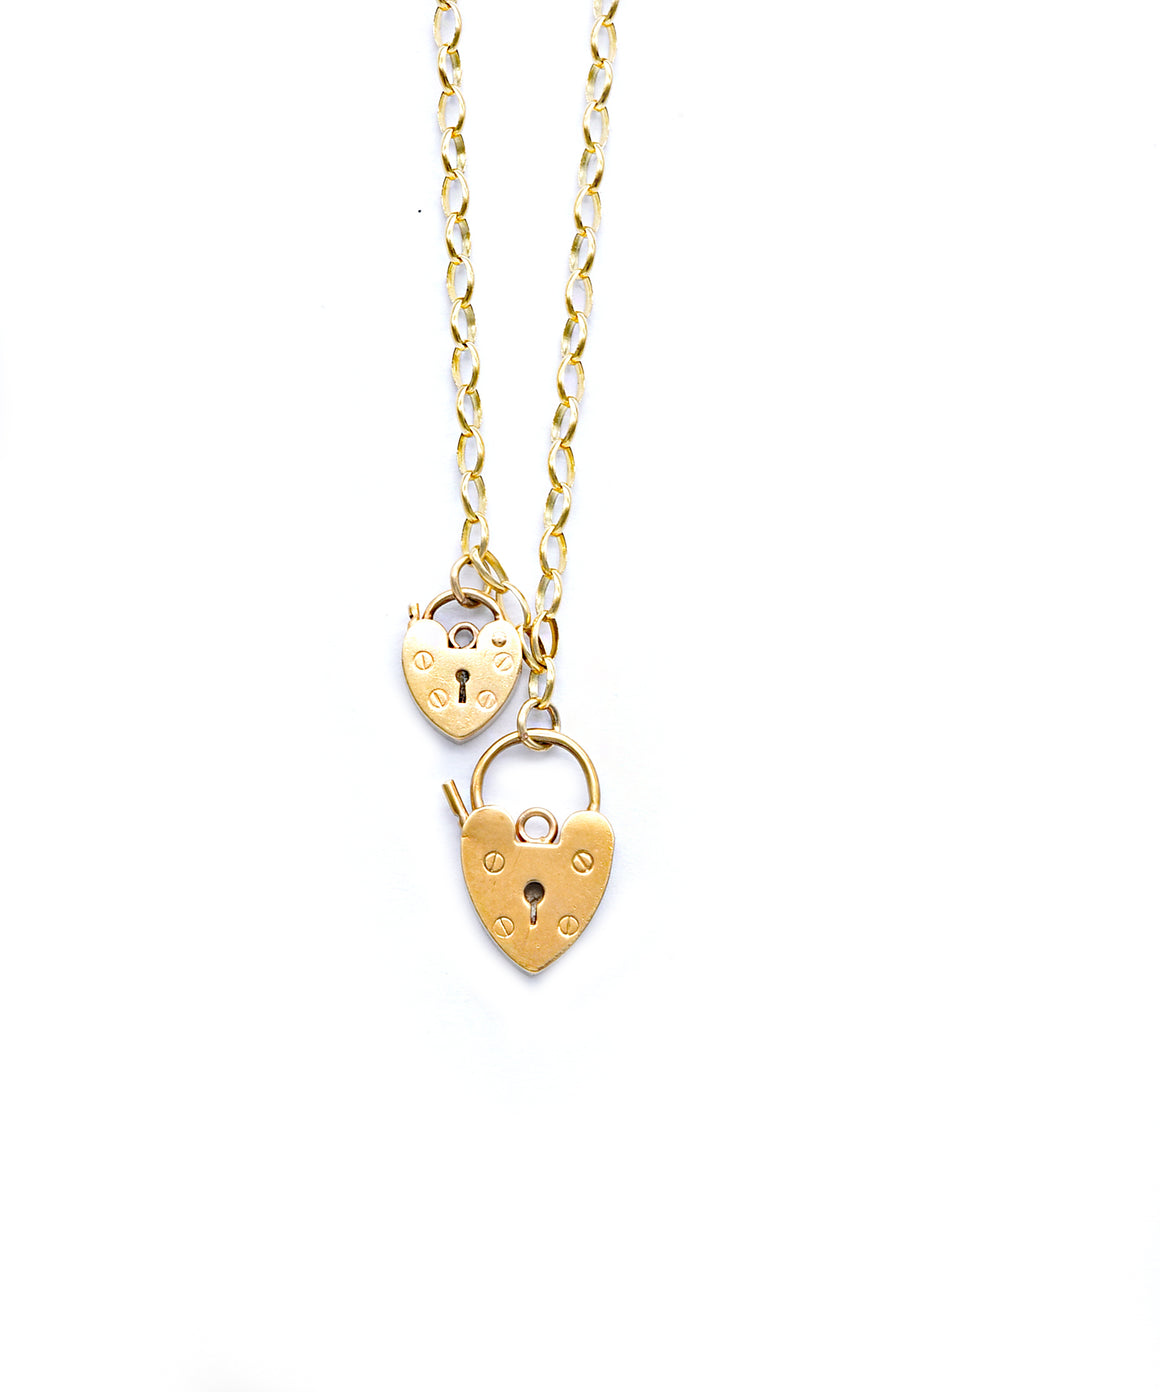 Double-heart padlock necklace